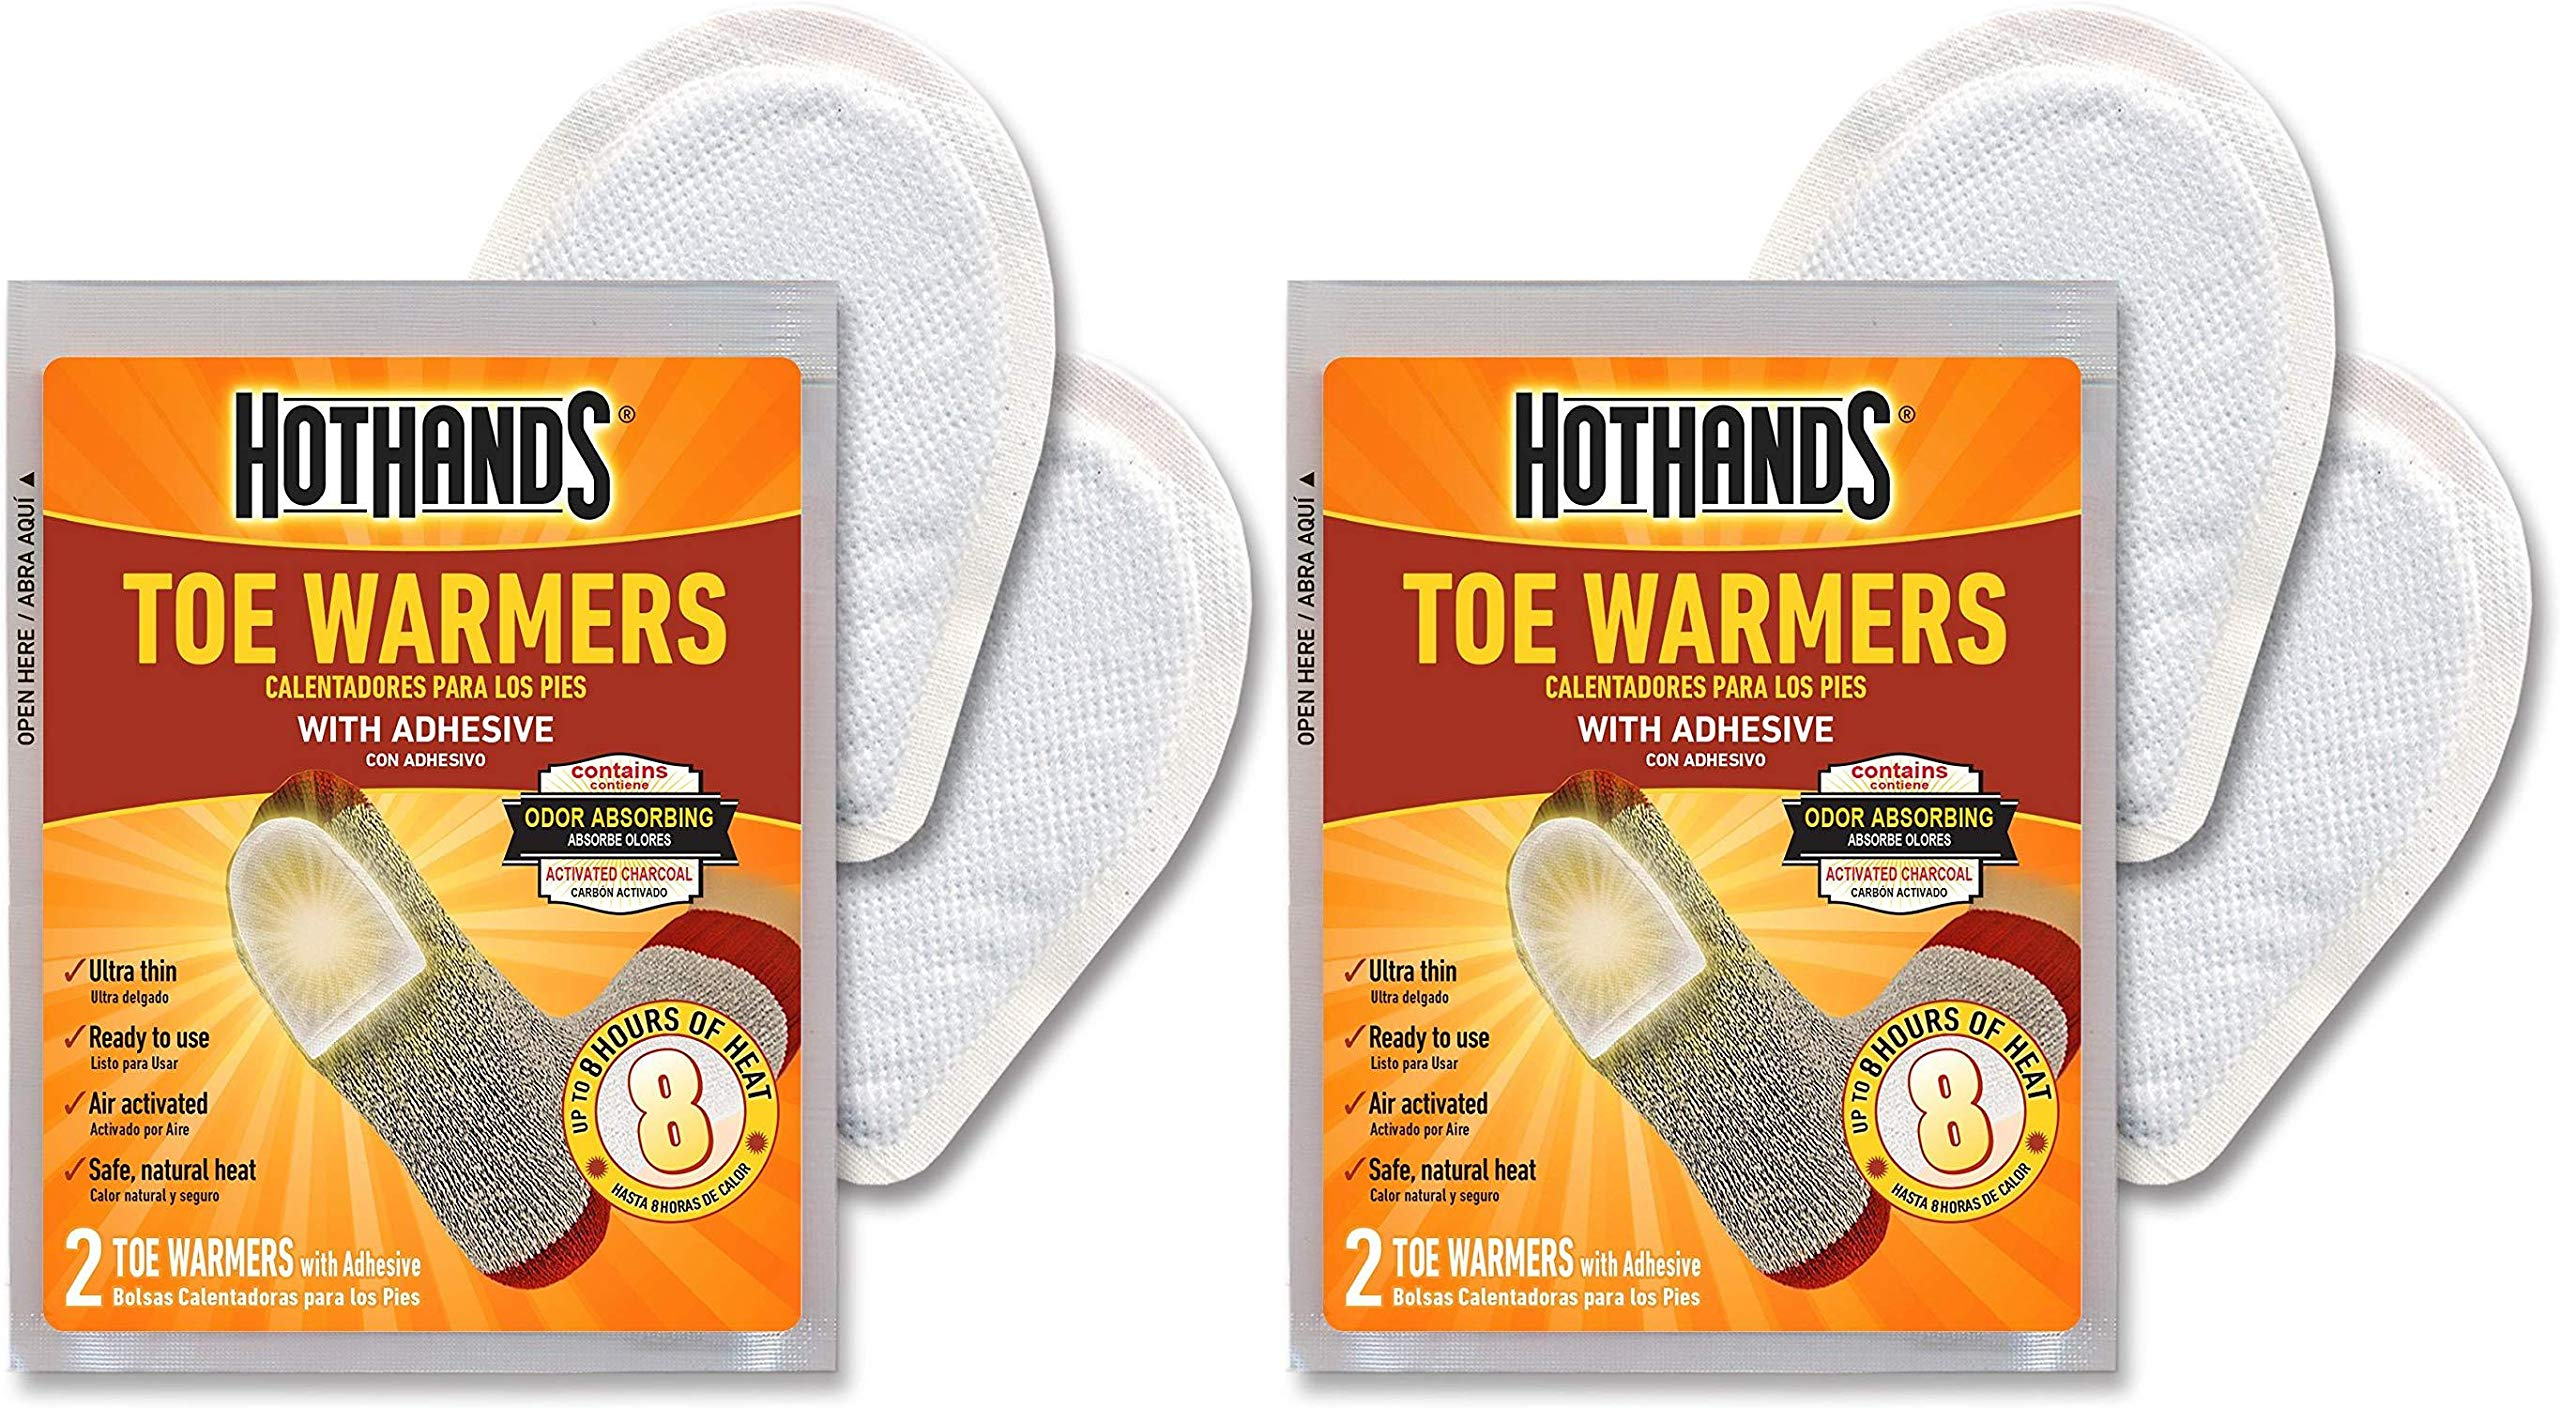 HotHands Toe Warmers 20 Pair Pack of 2 by HotHands